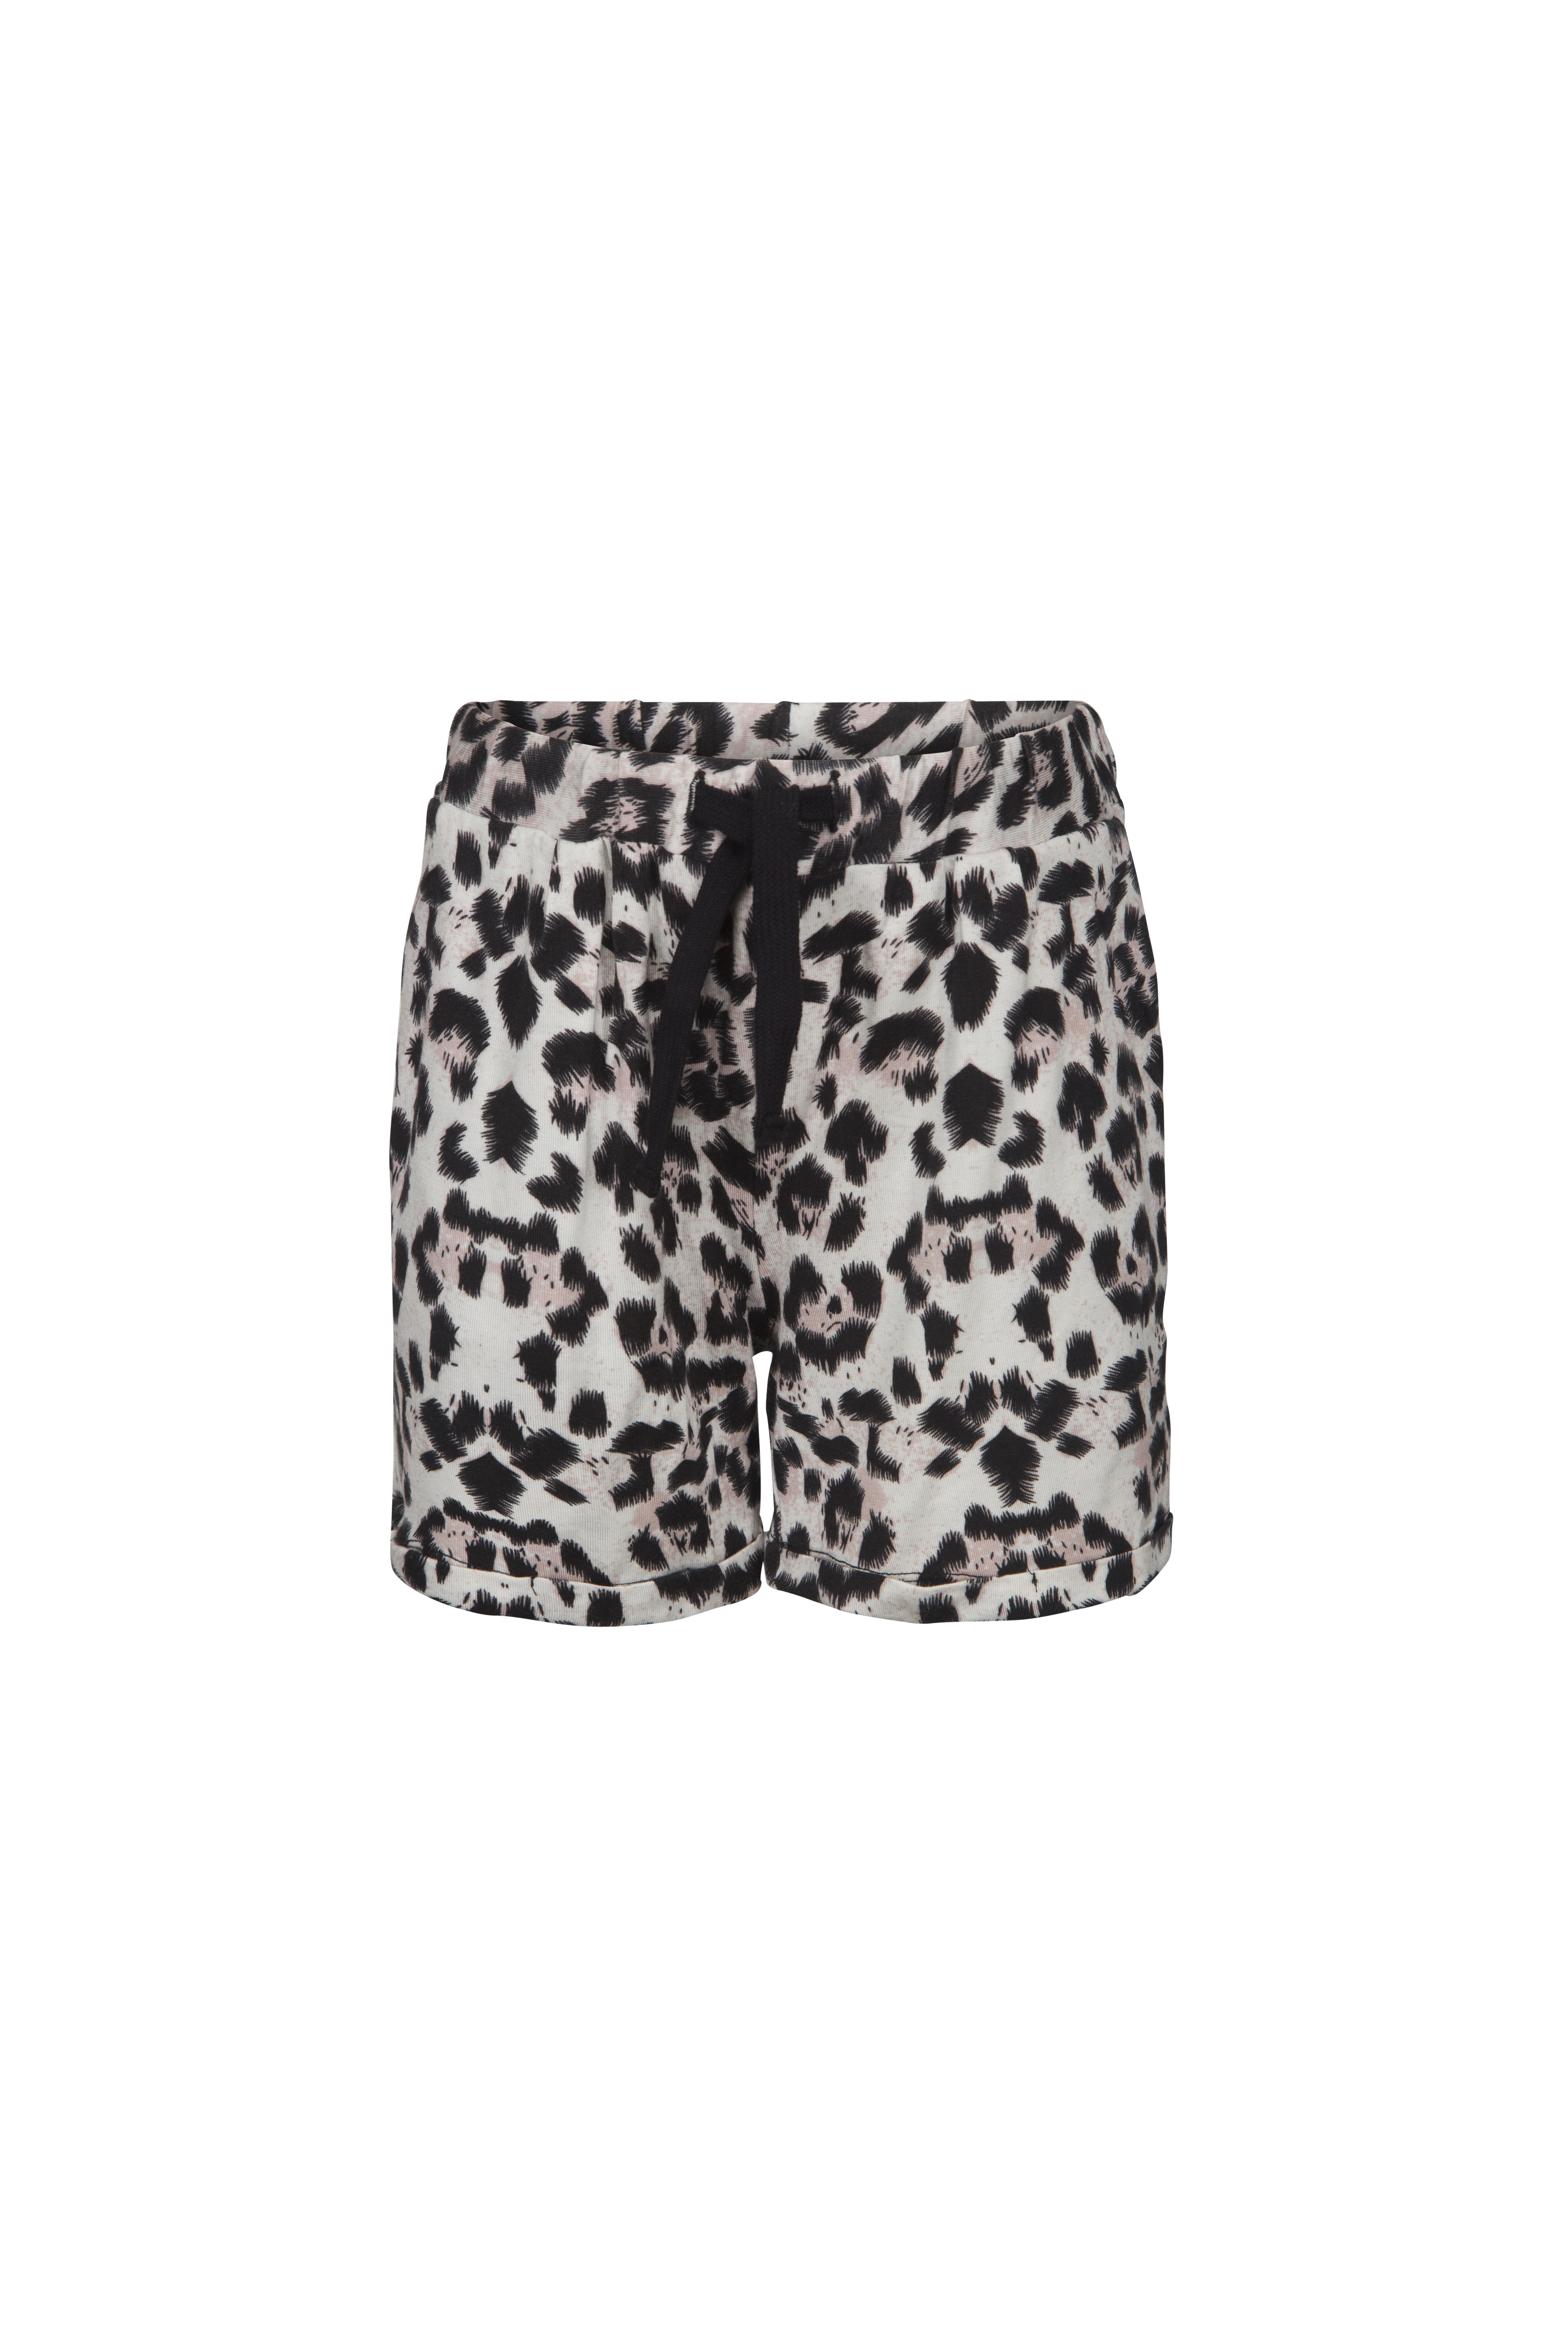 f4b0749d95c The Hiding Place - Sofie Schnoor: Leo shorts